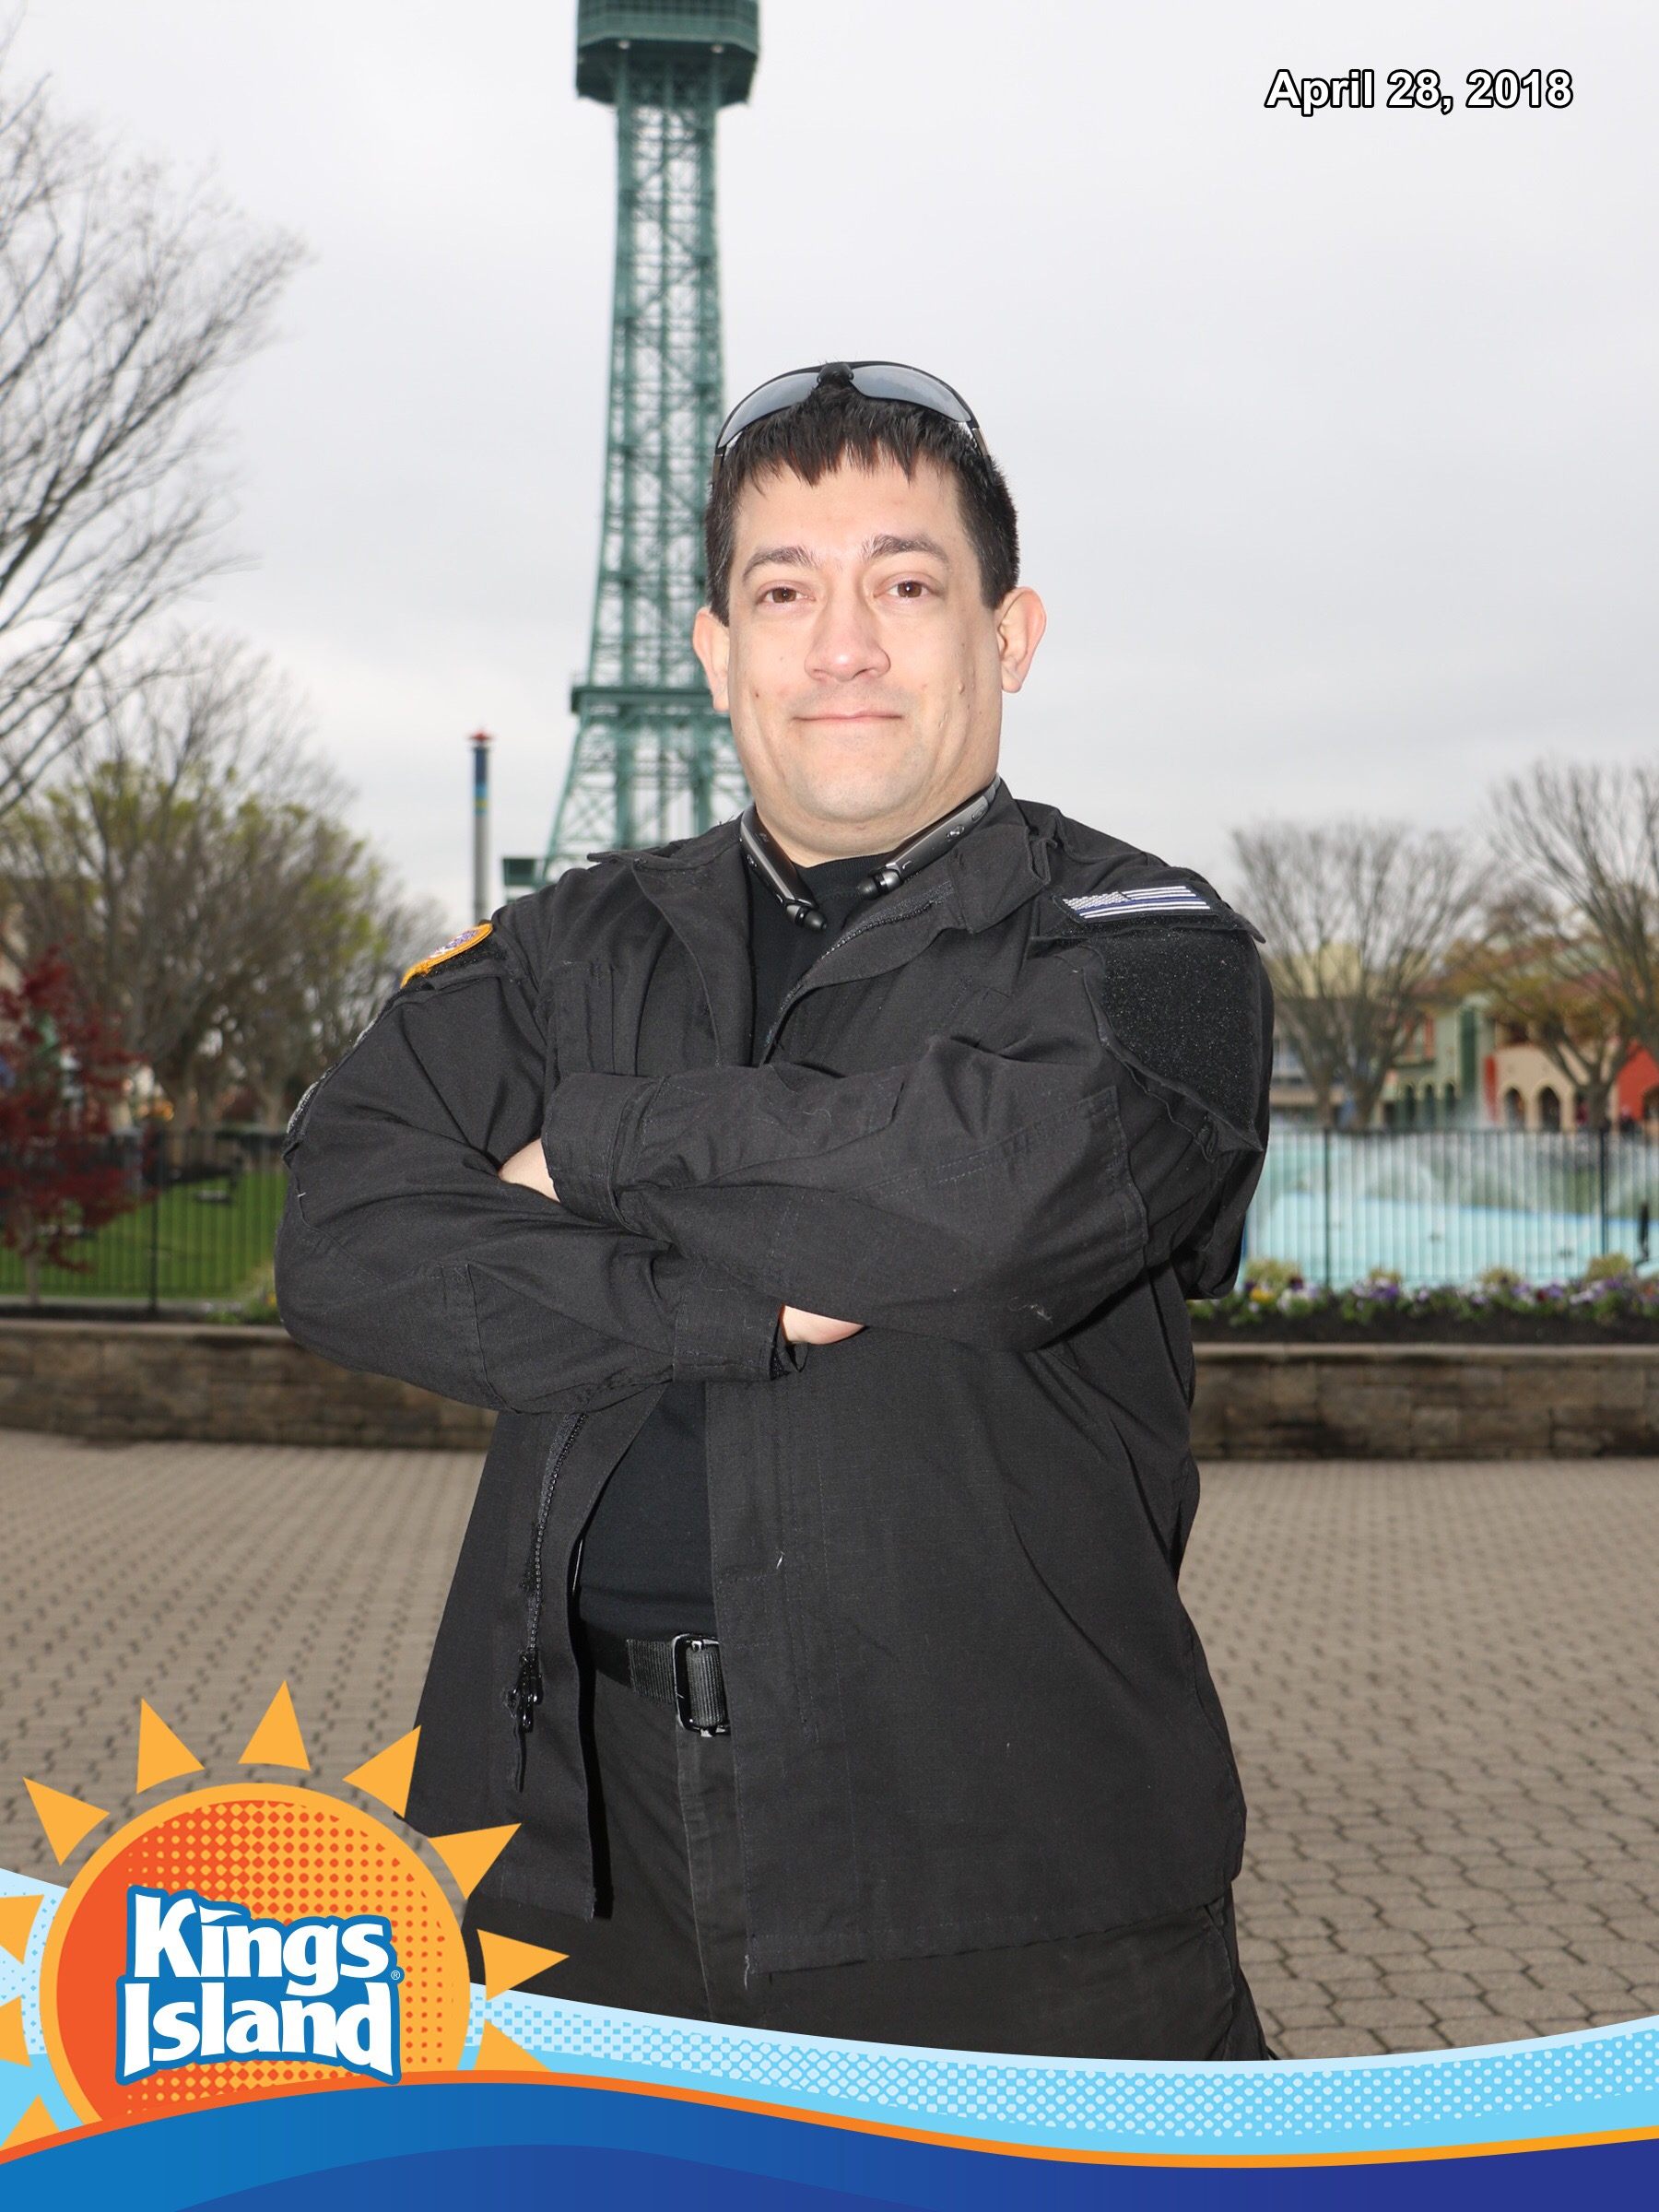 connor goodwolf theme parks kings island front 01 04282018